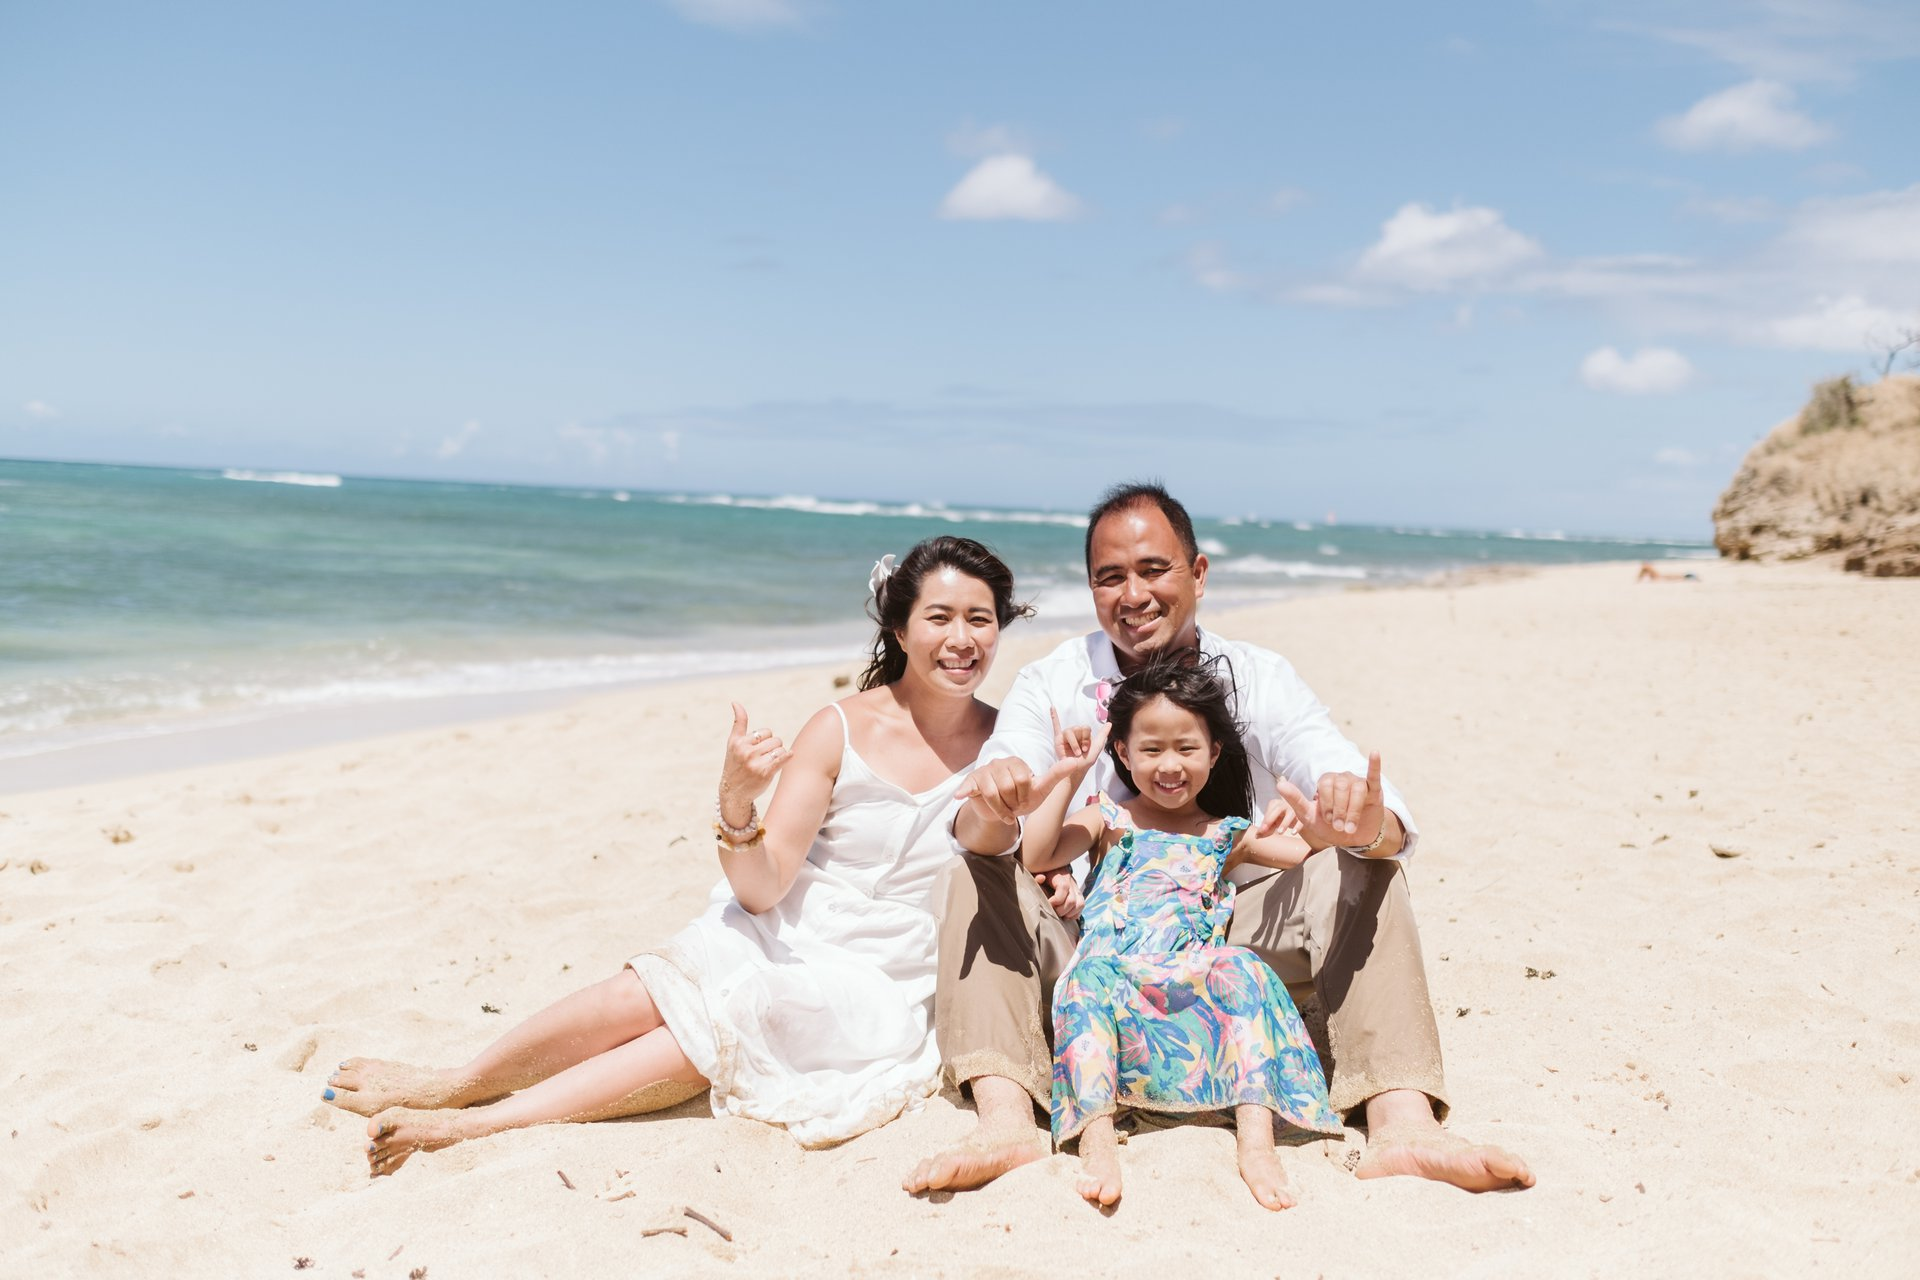 Flytographer Travel Story - Chloe's First Time in Oahu